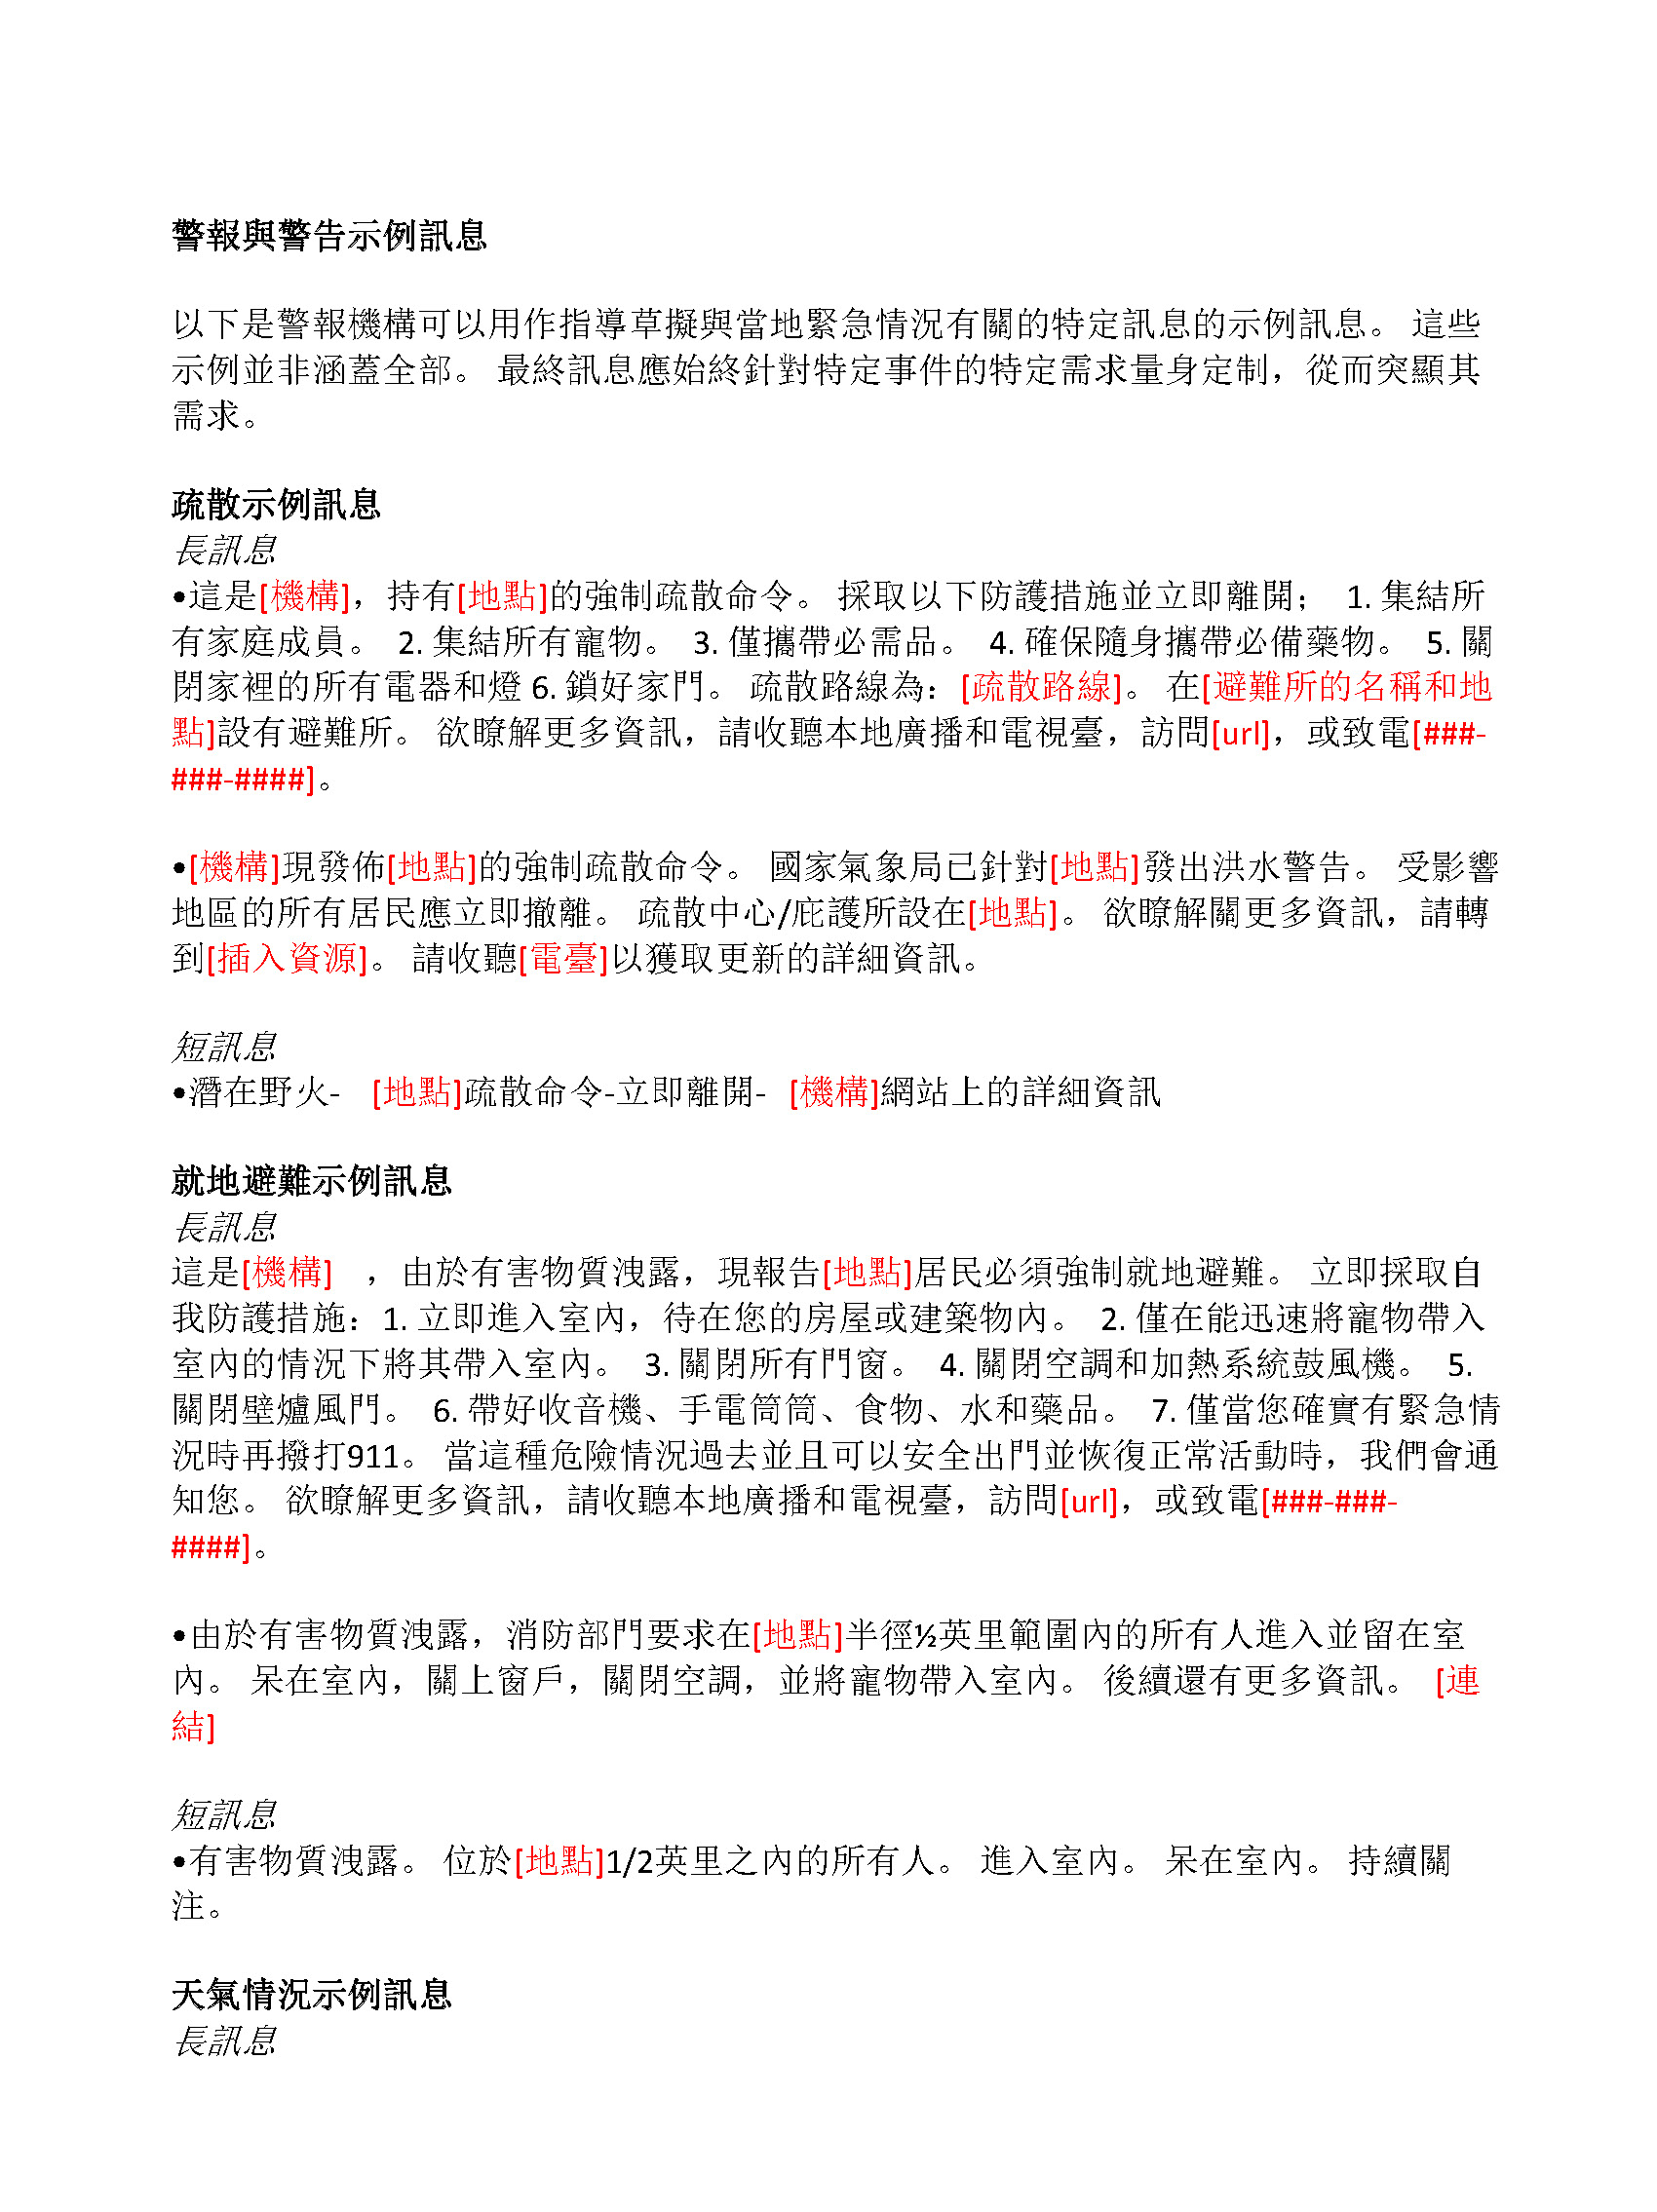 Image of the Sample AW Messages Traditional Chinese document